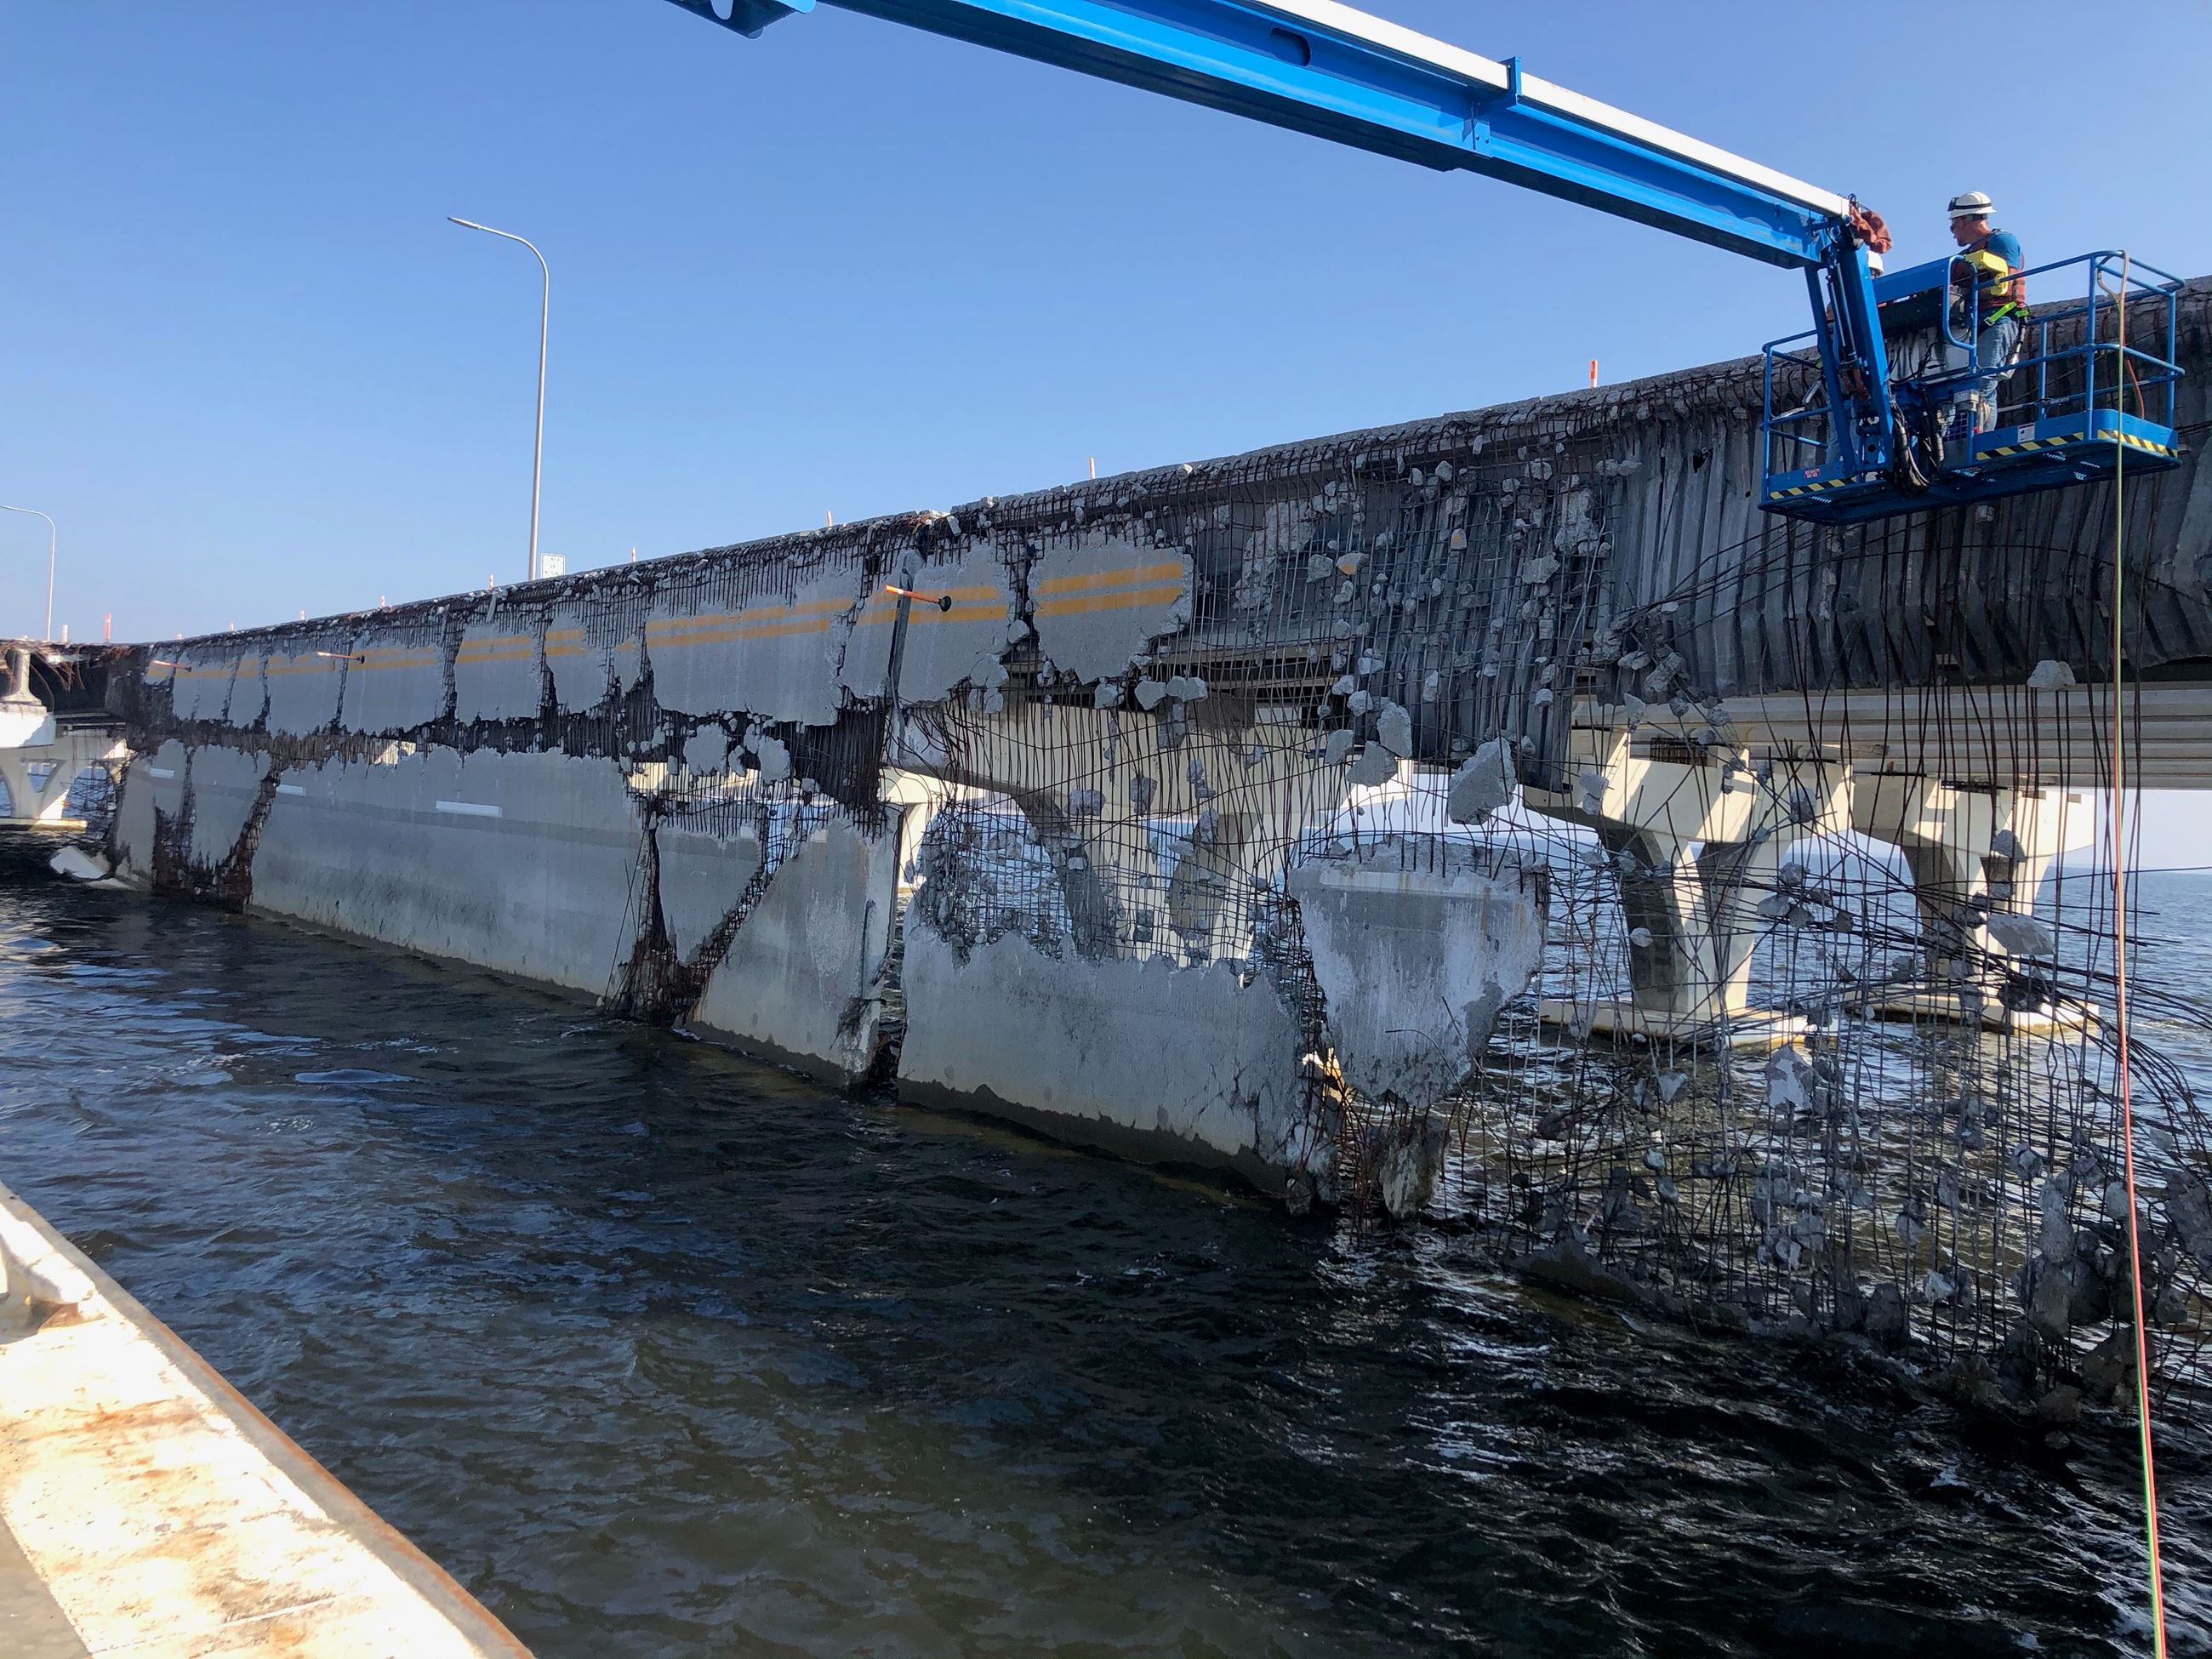 A section of the damaged Pensacola Bay Bridge being removed